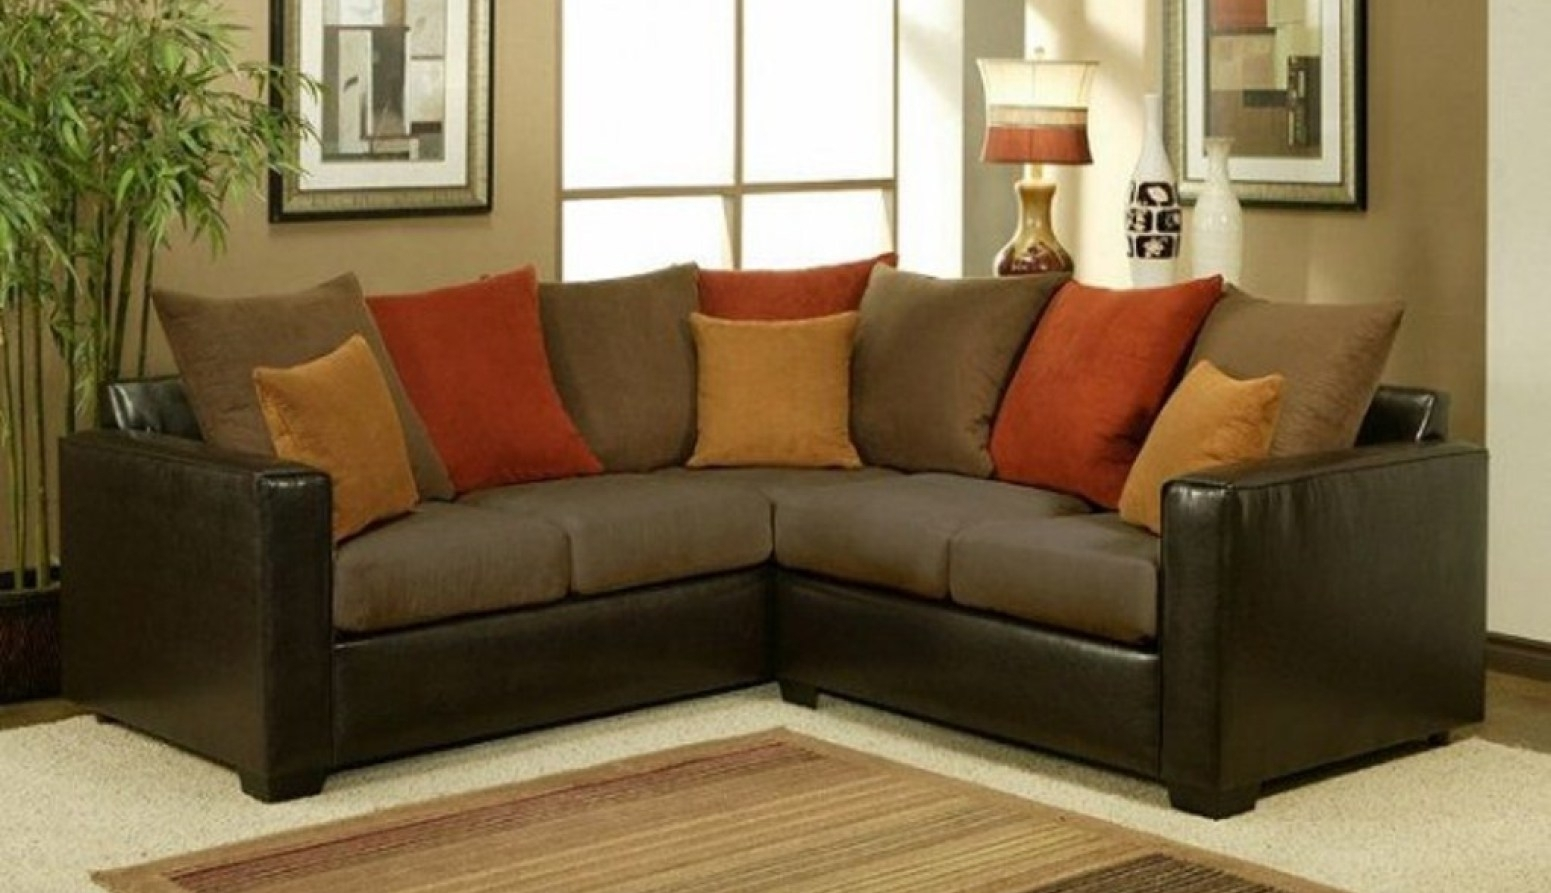 Incredible Sectional Sofas Big Lots – Mediasupload Throughout Sectional Sofas At Big Lots (View 5 of 10)